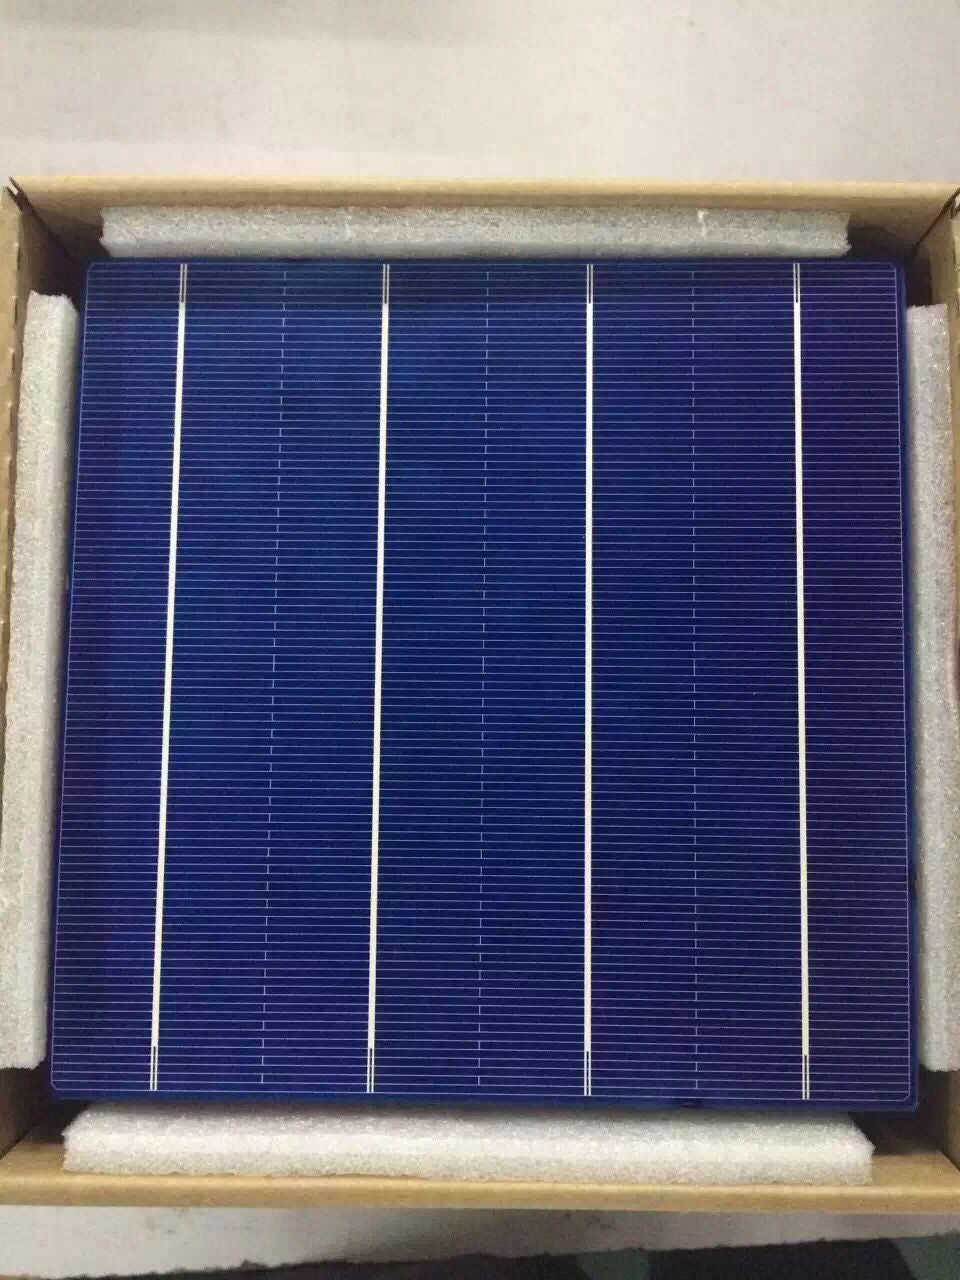 10 Pcs 45W 156MM Efficiency Photovoltaic Polycrystalline Silicon Solar Cell 6x6 Prices Cheap Grade A For DIY PV Poly Solar Panel - Trivoshop.com